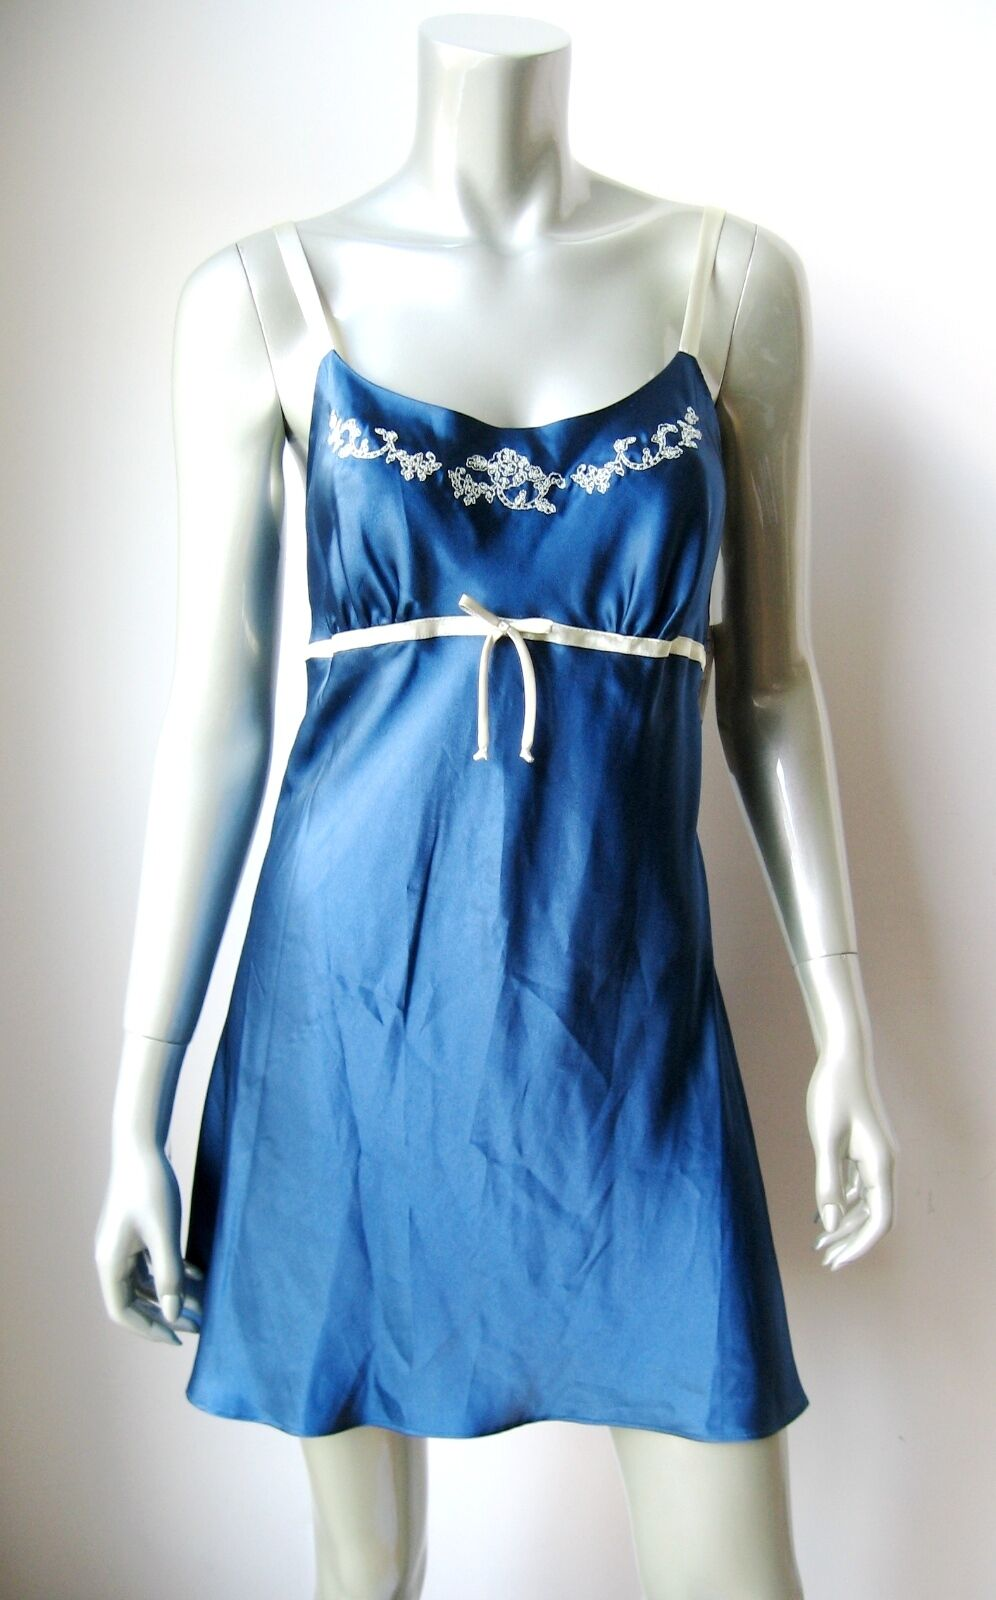 www.prominentresults.com :IN003 Jones New York NEW 1J217C White Embroidery Trim Blue Satin Essentials Chemise L